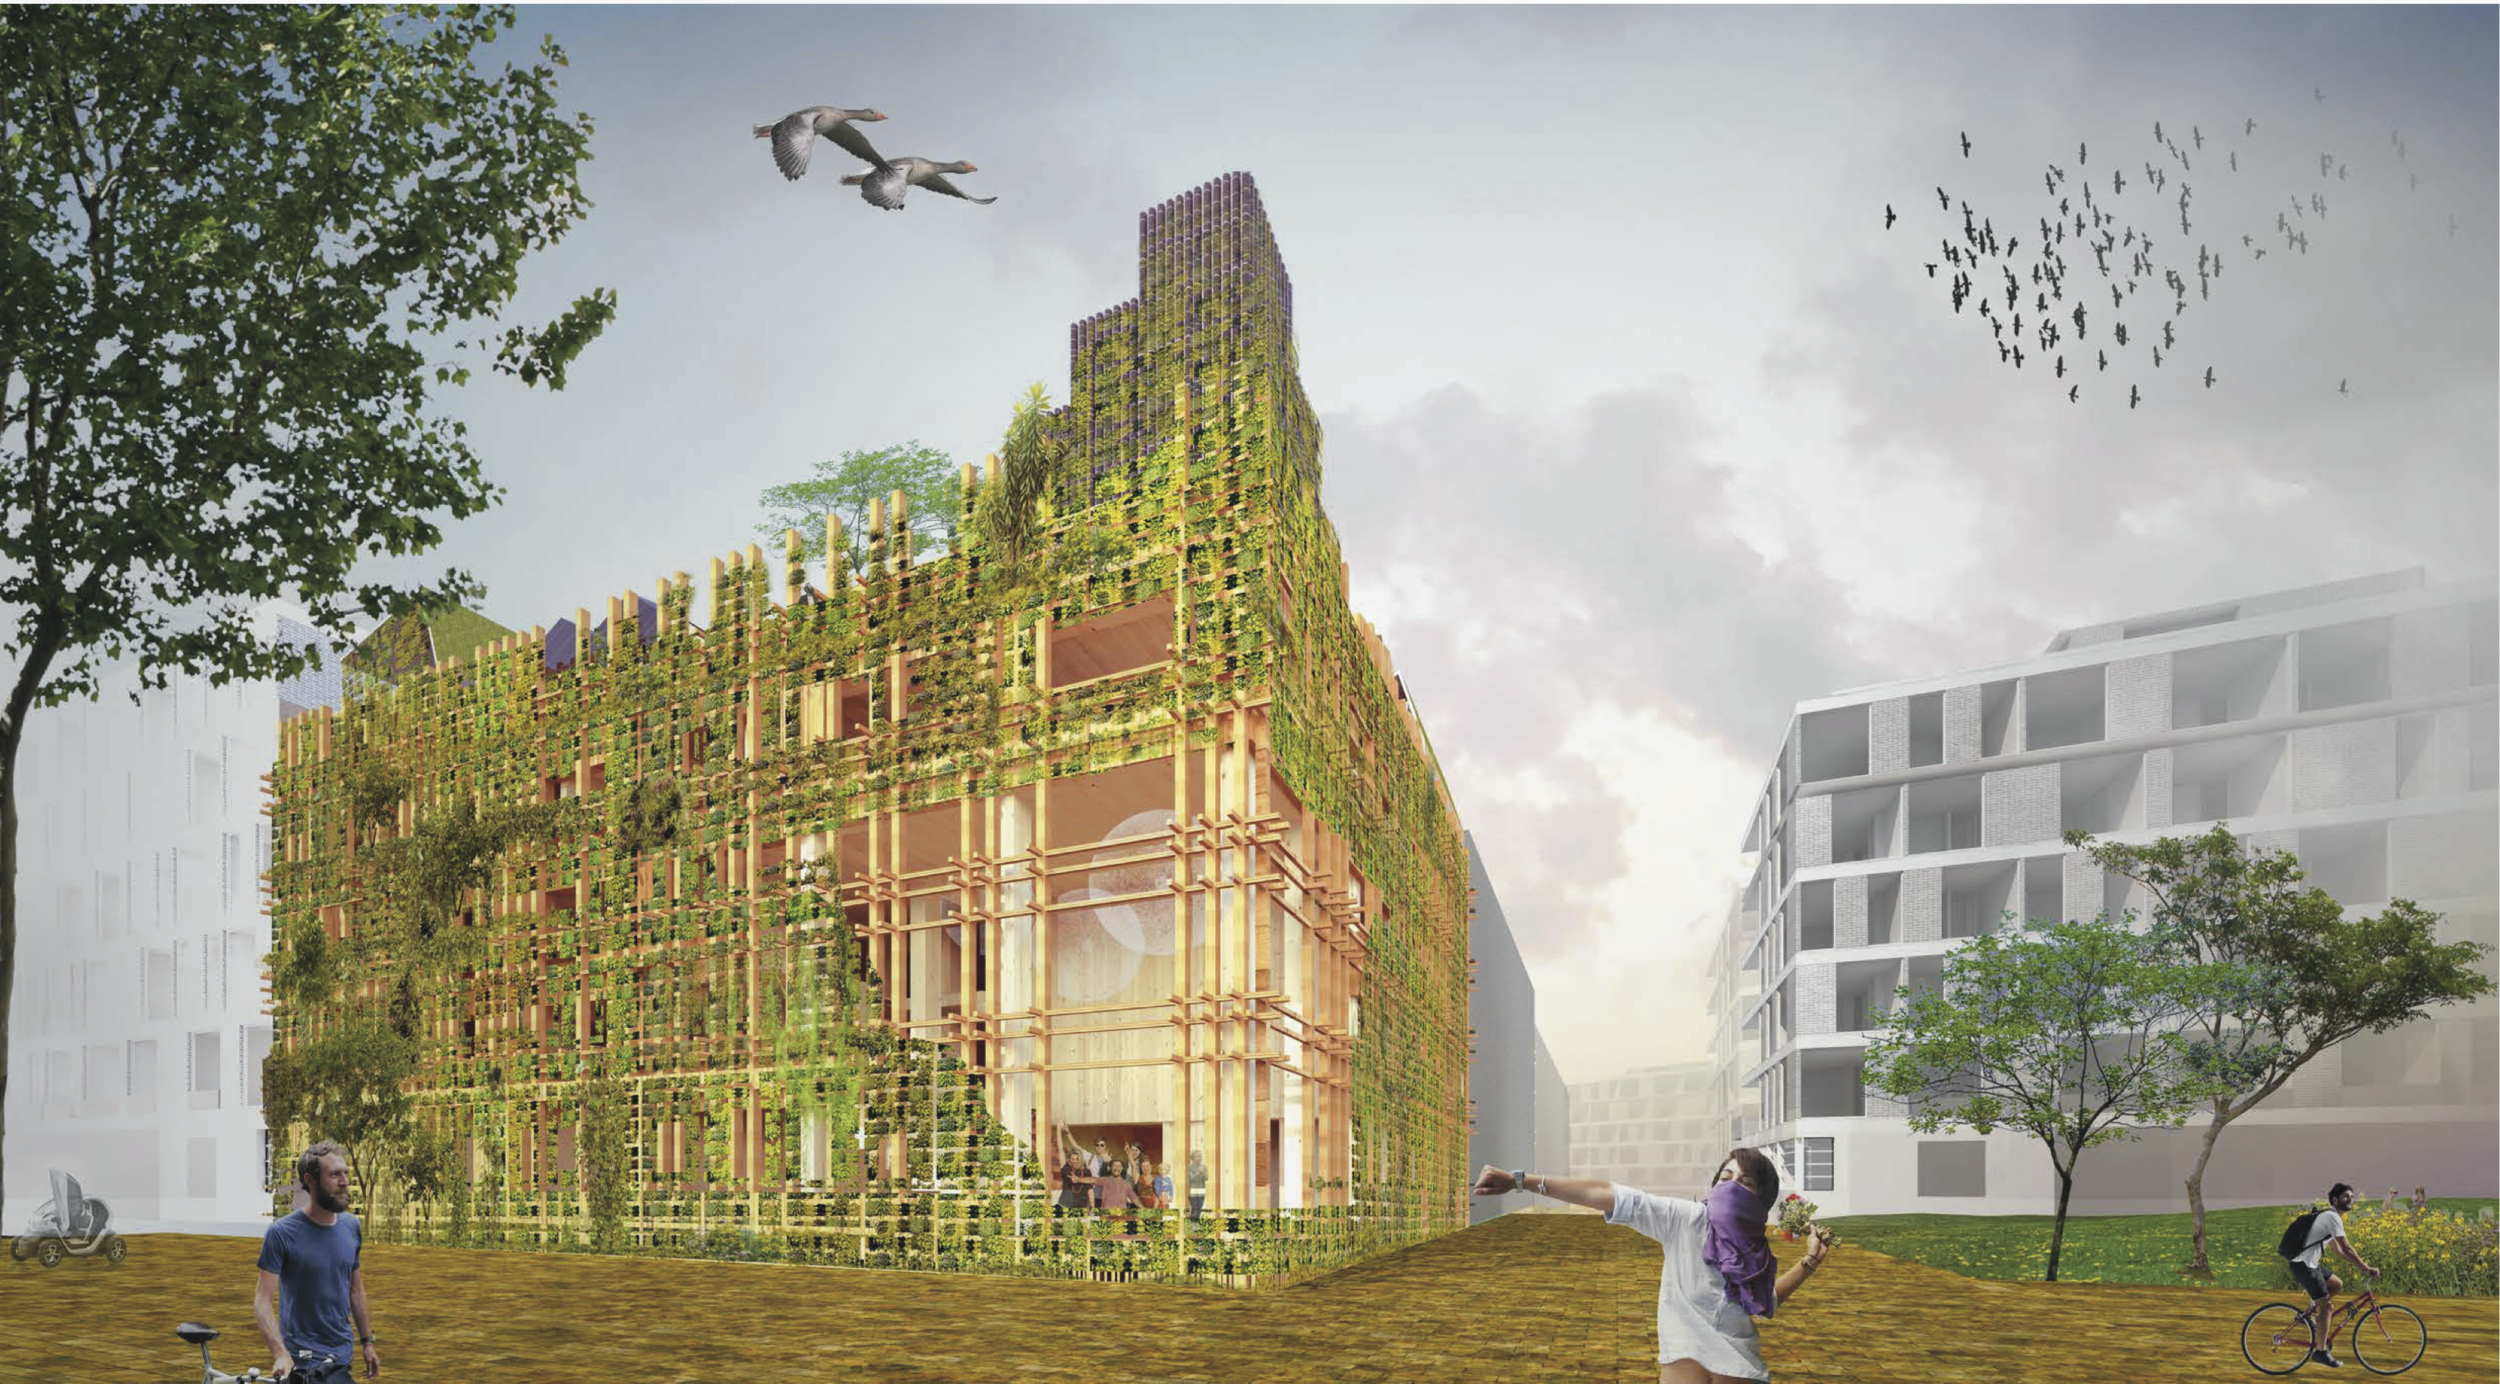 De Warren met Natuurinclusieve Gevel (c) Natrufied Architecture